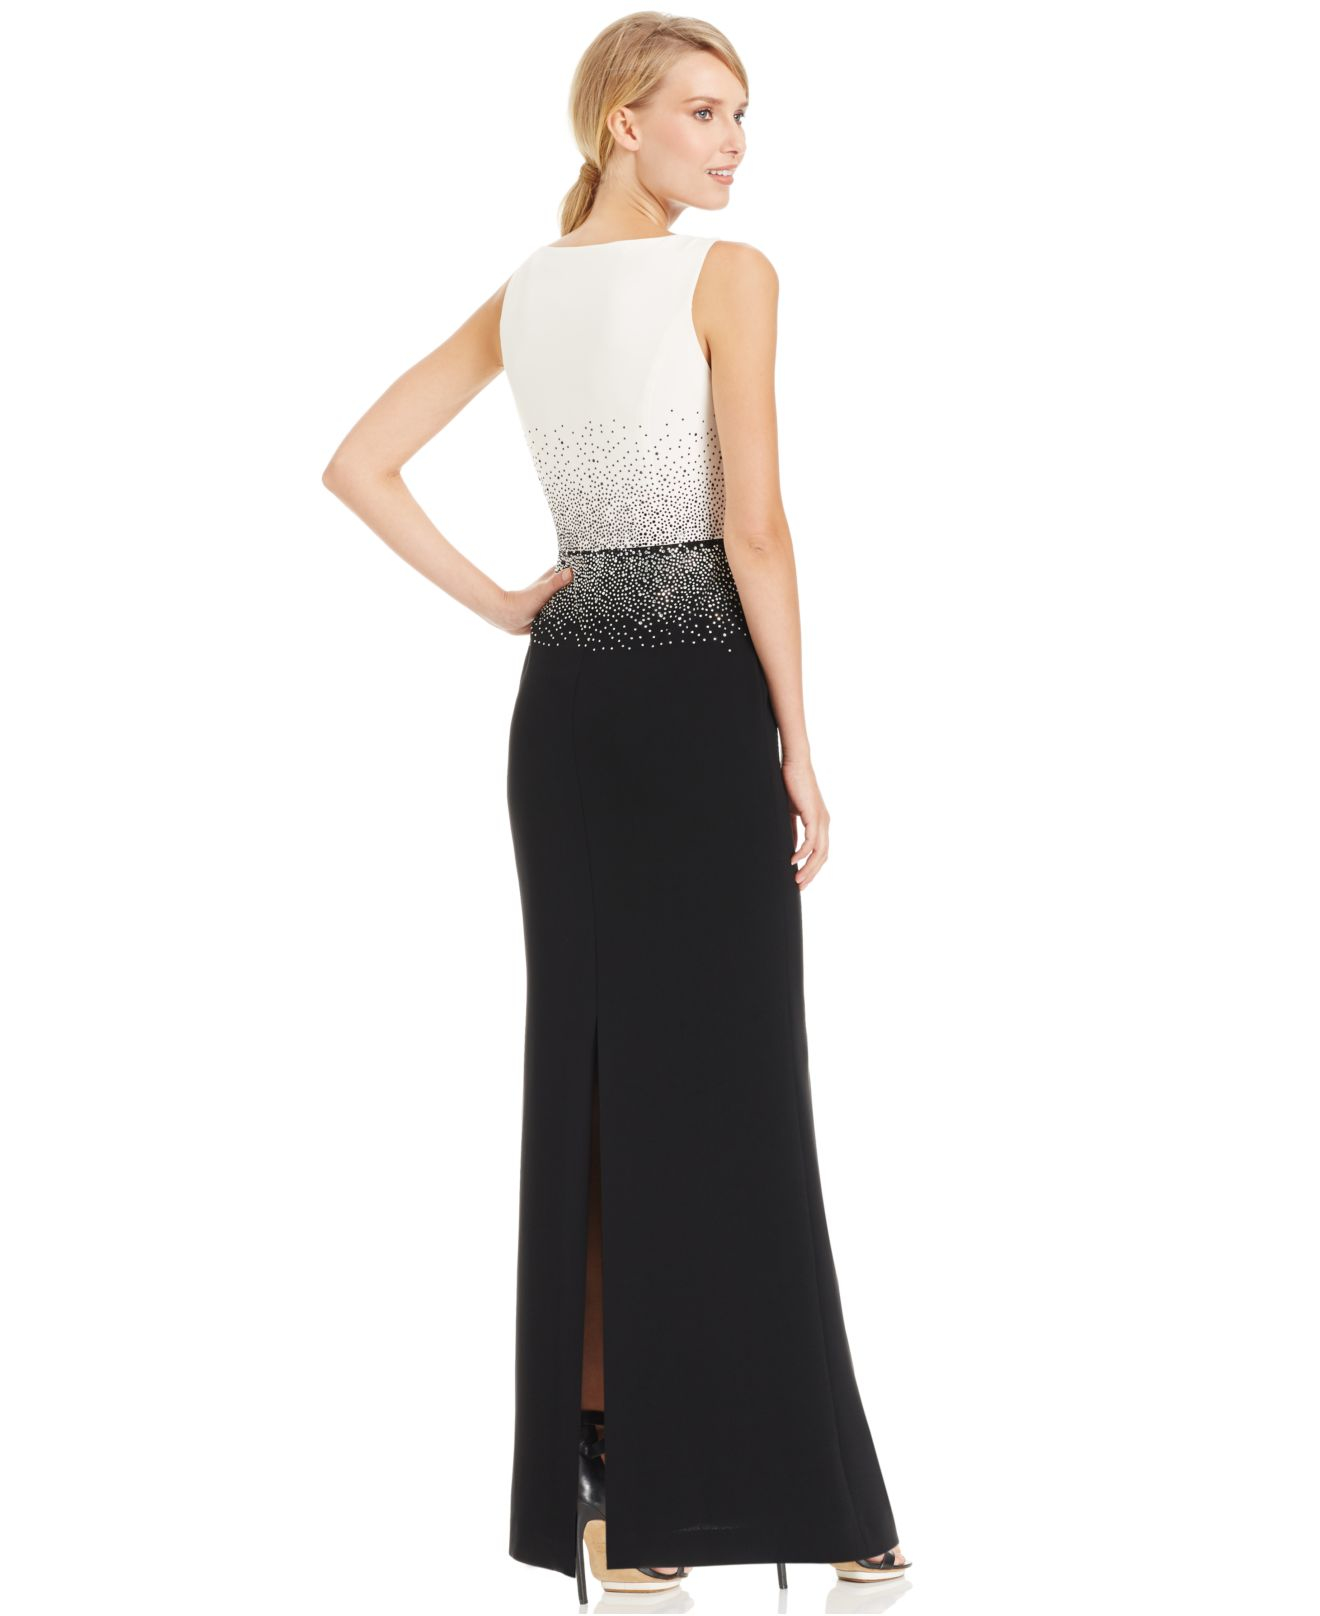 Lyst - Calvin Klein Studded Colorblocked Evening Dress in Black